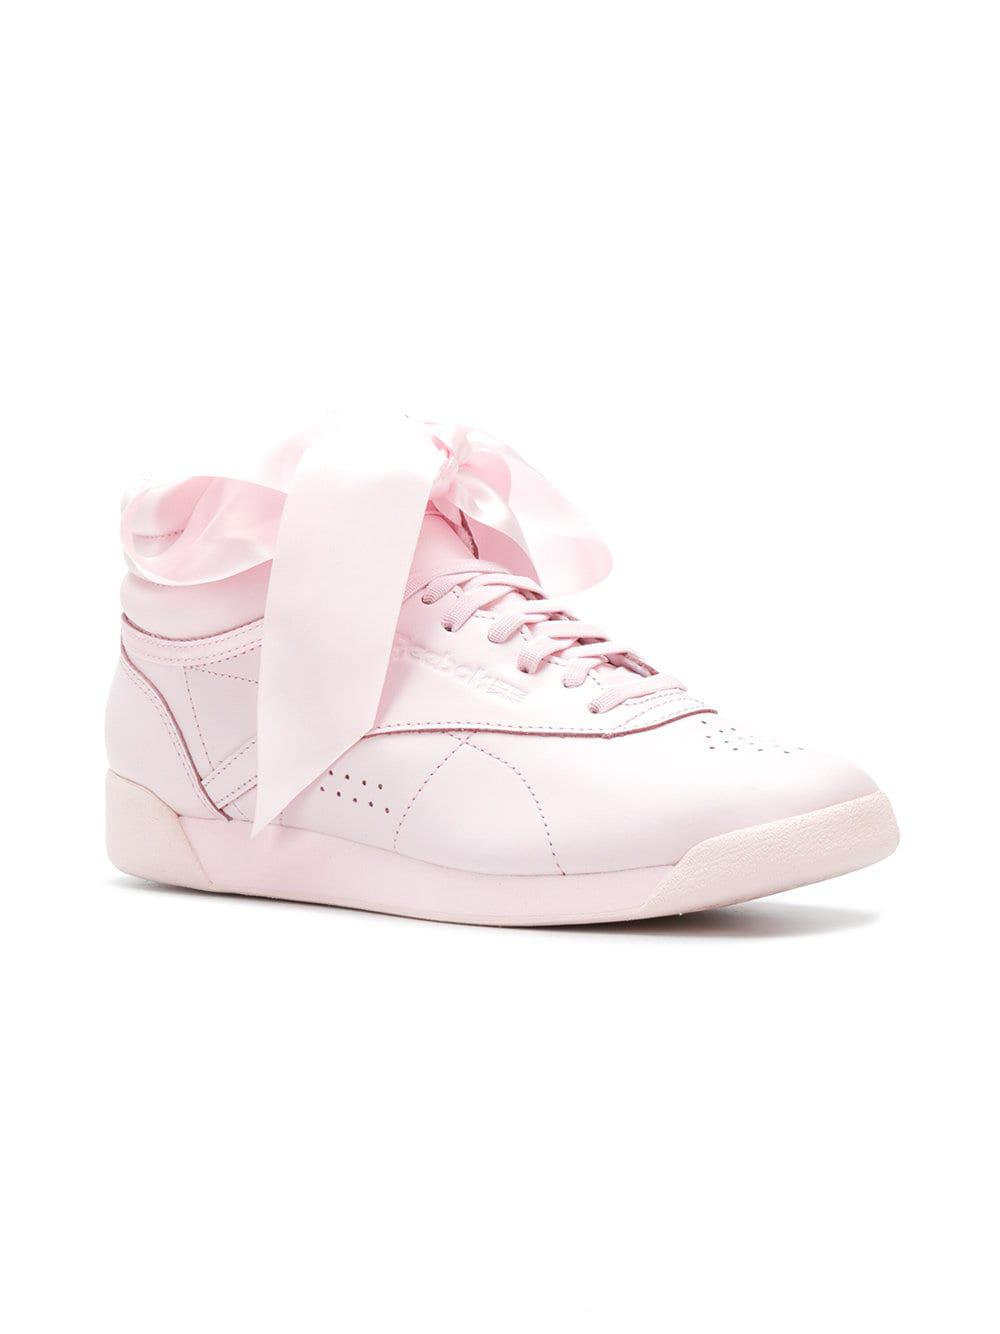 19d288fb2d96 Reebok - Pink Freestyle Hi Satin Bow Sneakers - Lyst. View fullscreen